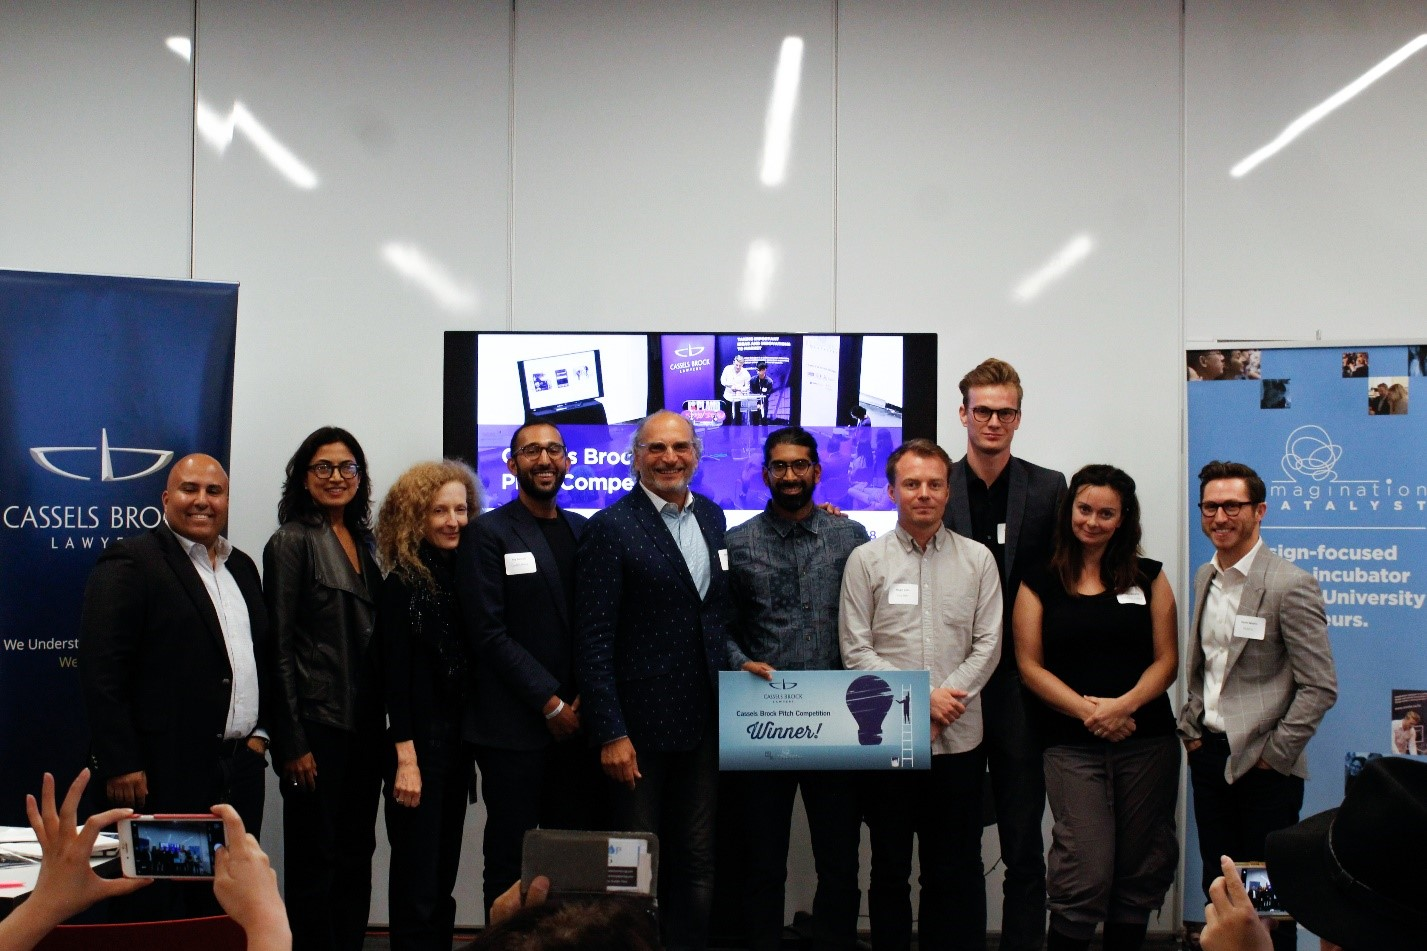 Judges and entrepreneurs at Imagination Catalyst's annual Cassels Brock Pitch Competition. Photo courtesy, Valerie Poon.